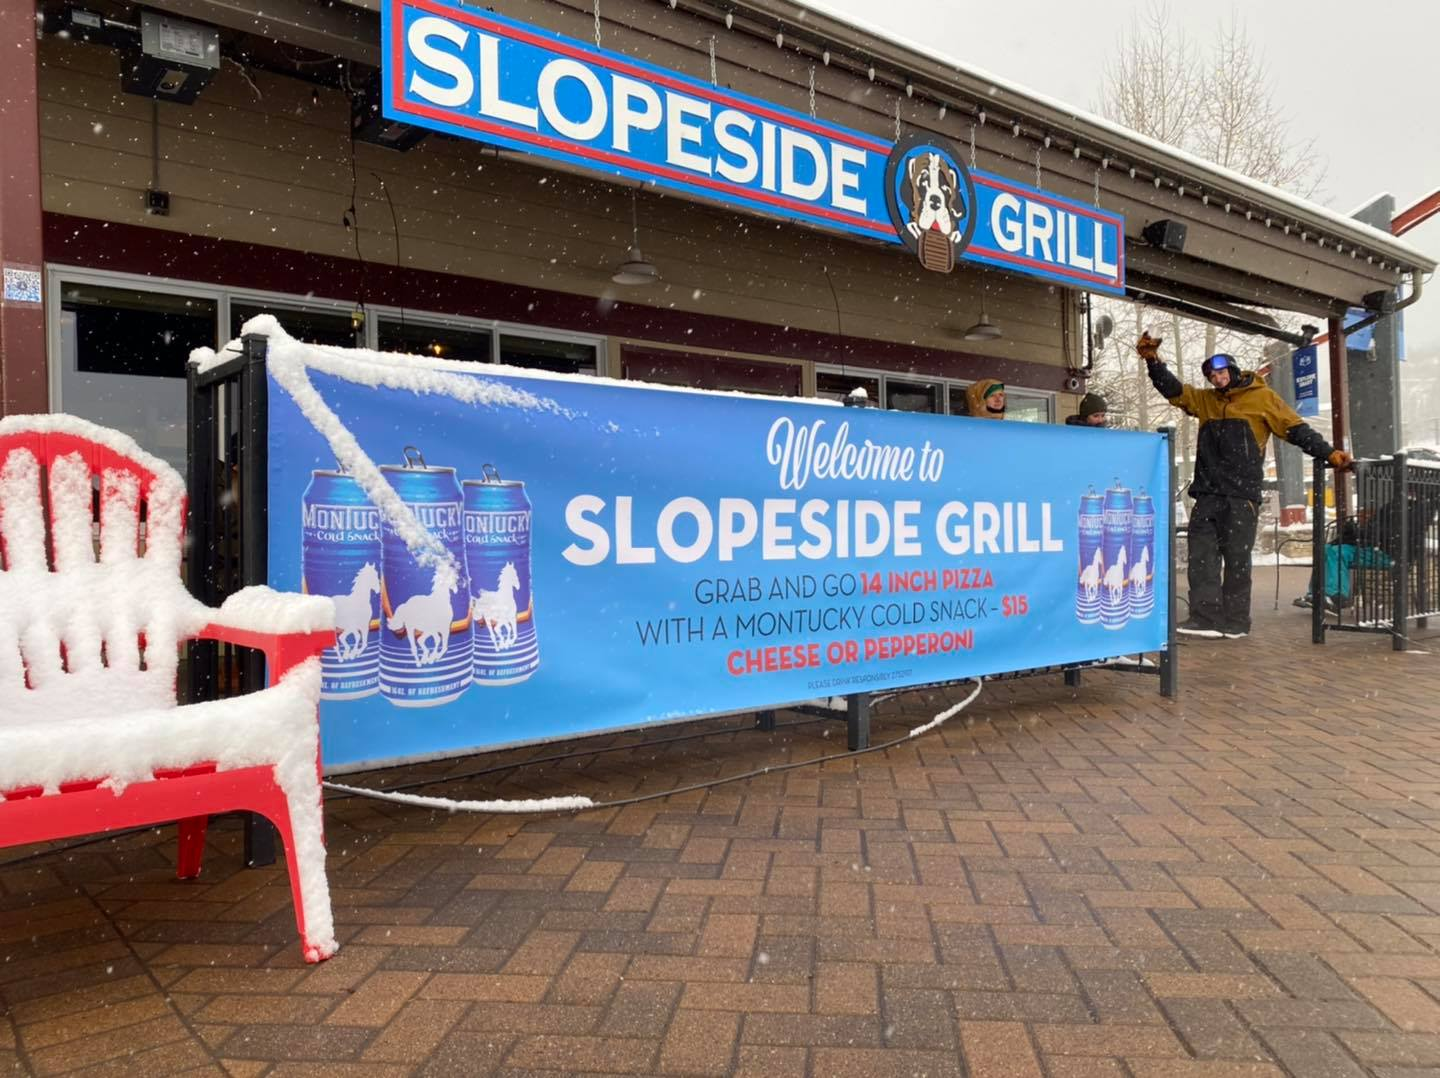 image of slopeside grill